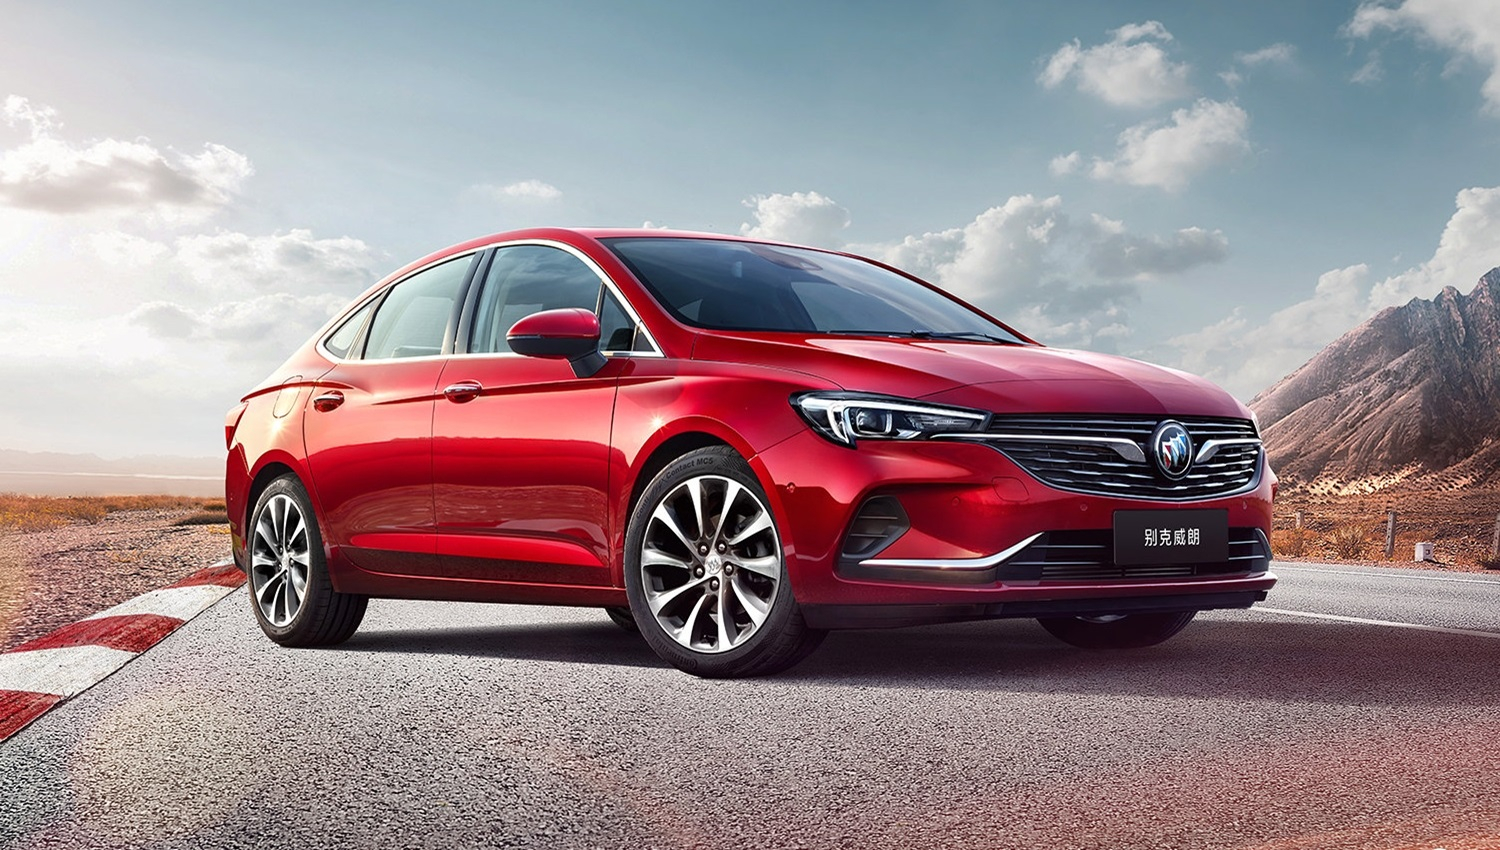 Gm Launches 2020 Buick Verano Refresh In China | Gm Authority 2022 Buick Verano Reviews, Used, Price